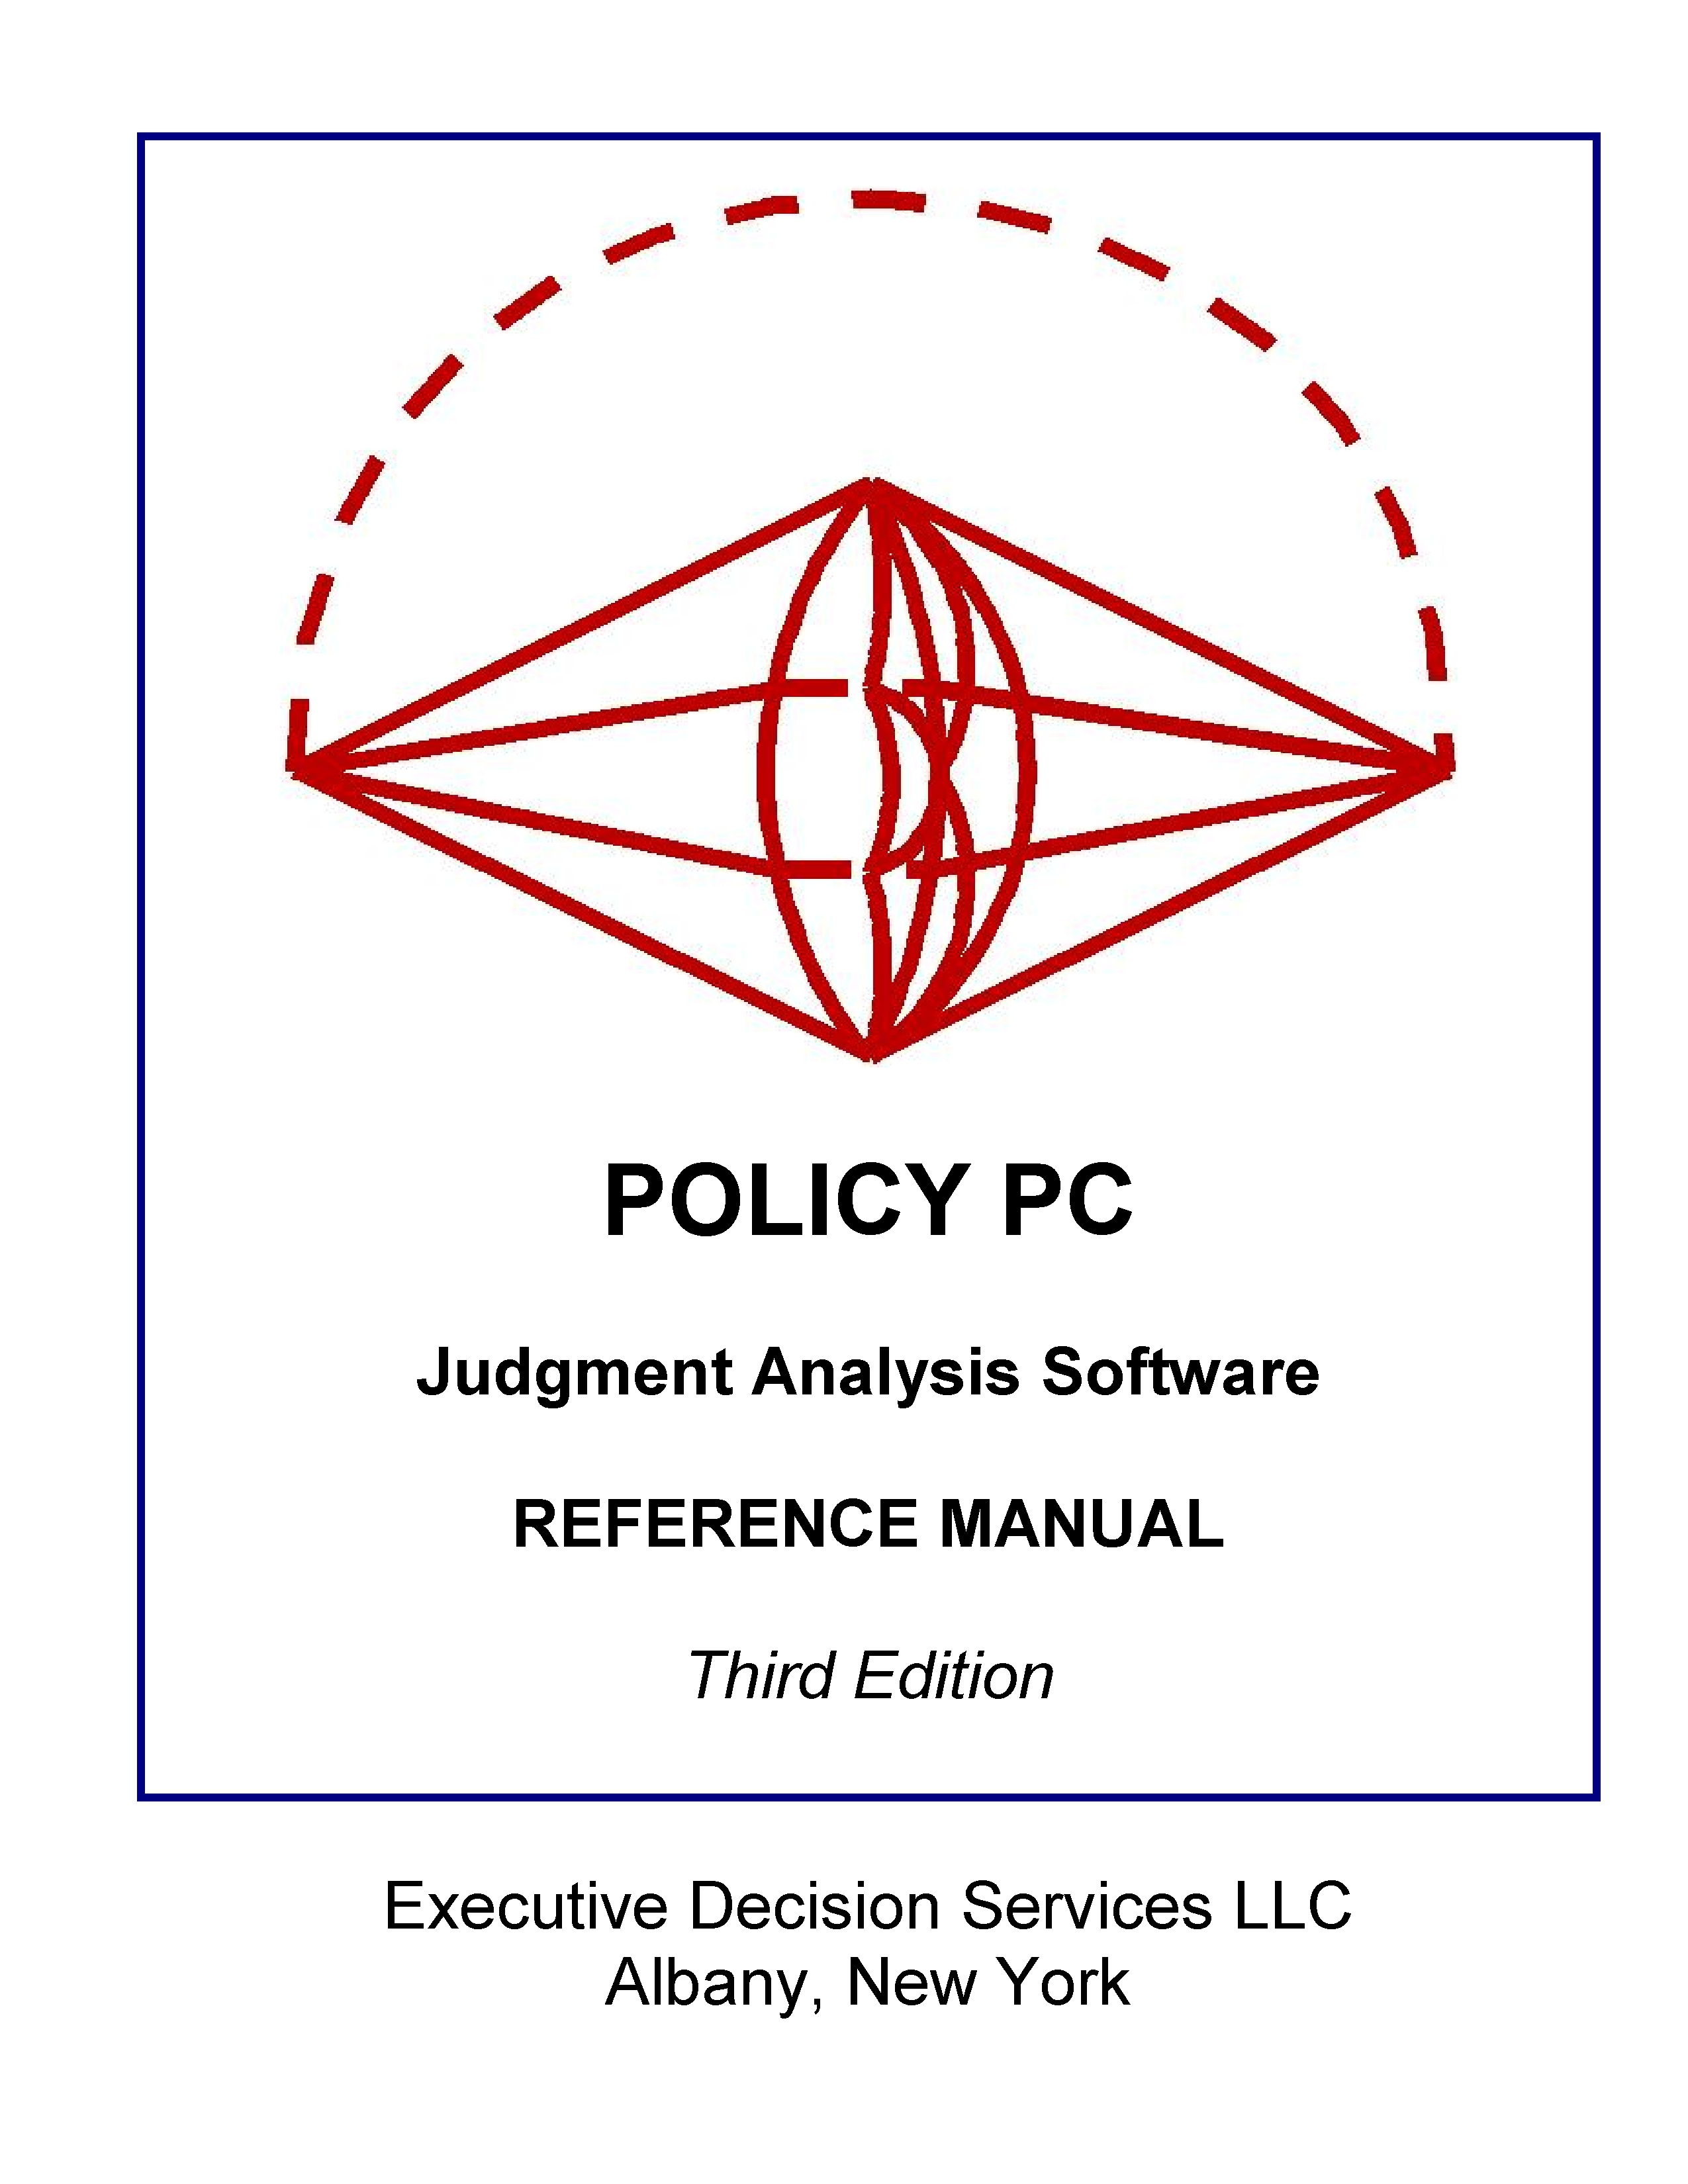 Policy Software for Judgment Analysis